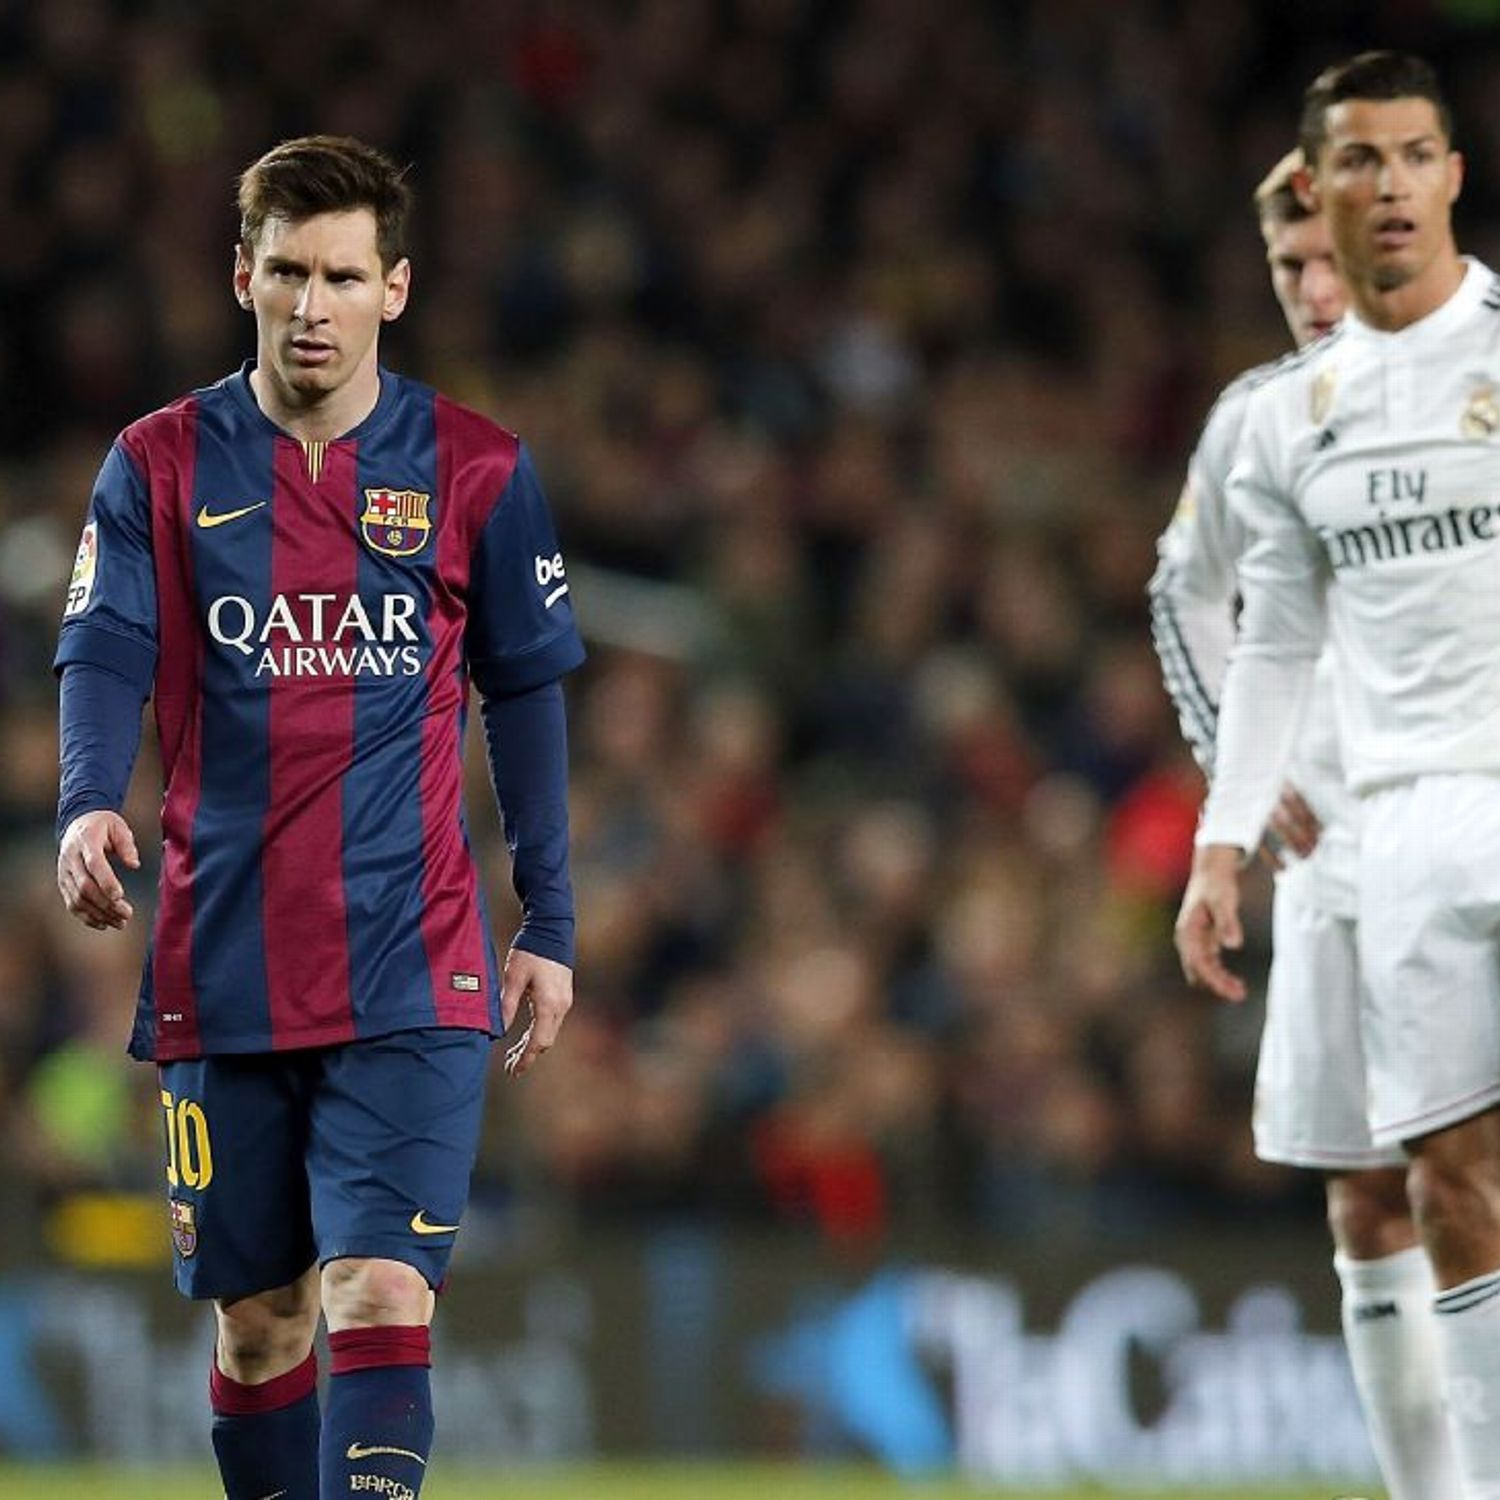 Cristiano Ronaldo I M Not Playing Just Lionel Messi: Cristiano Ronaldo: Lionel Messi And I Do Not Have A 'big